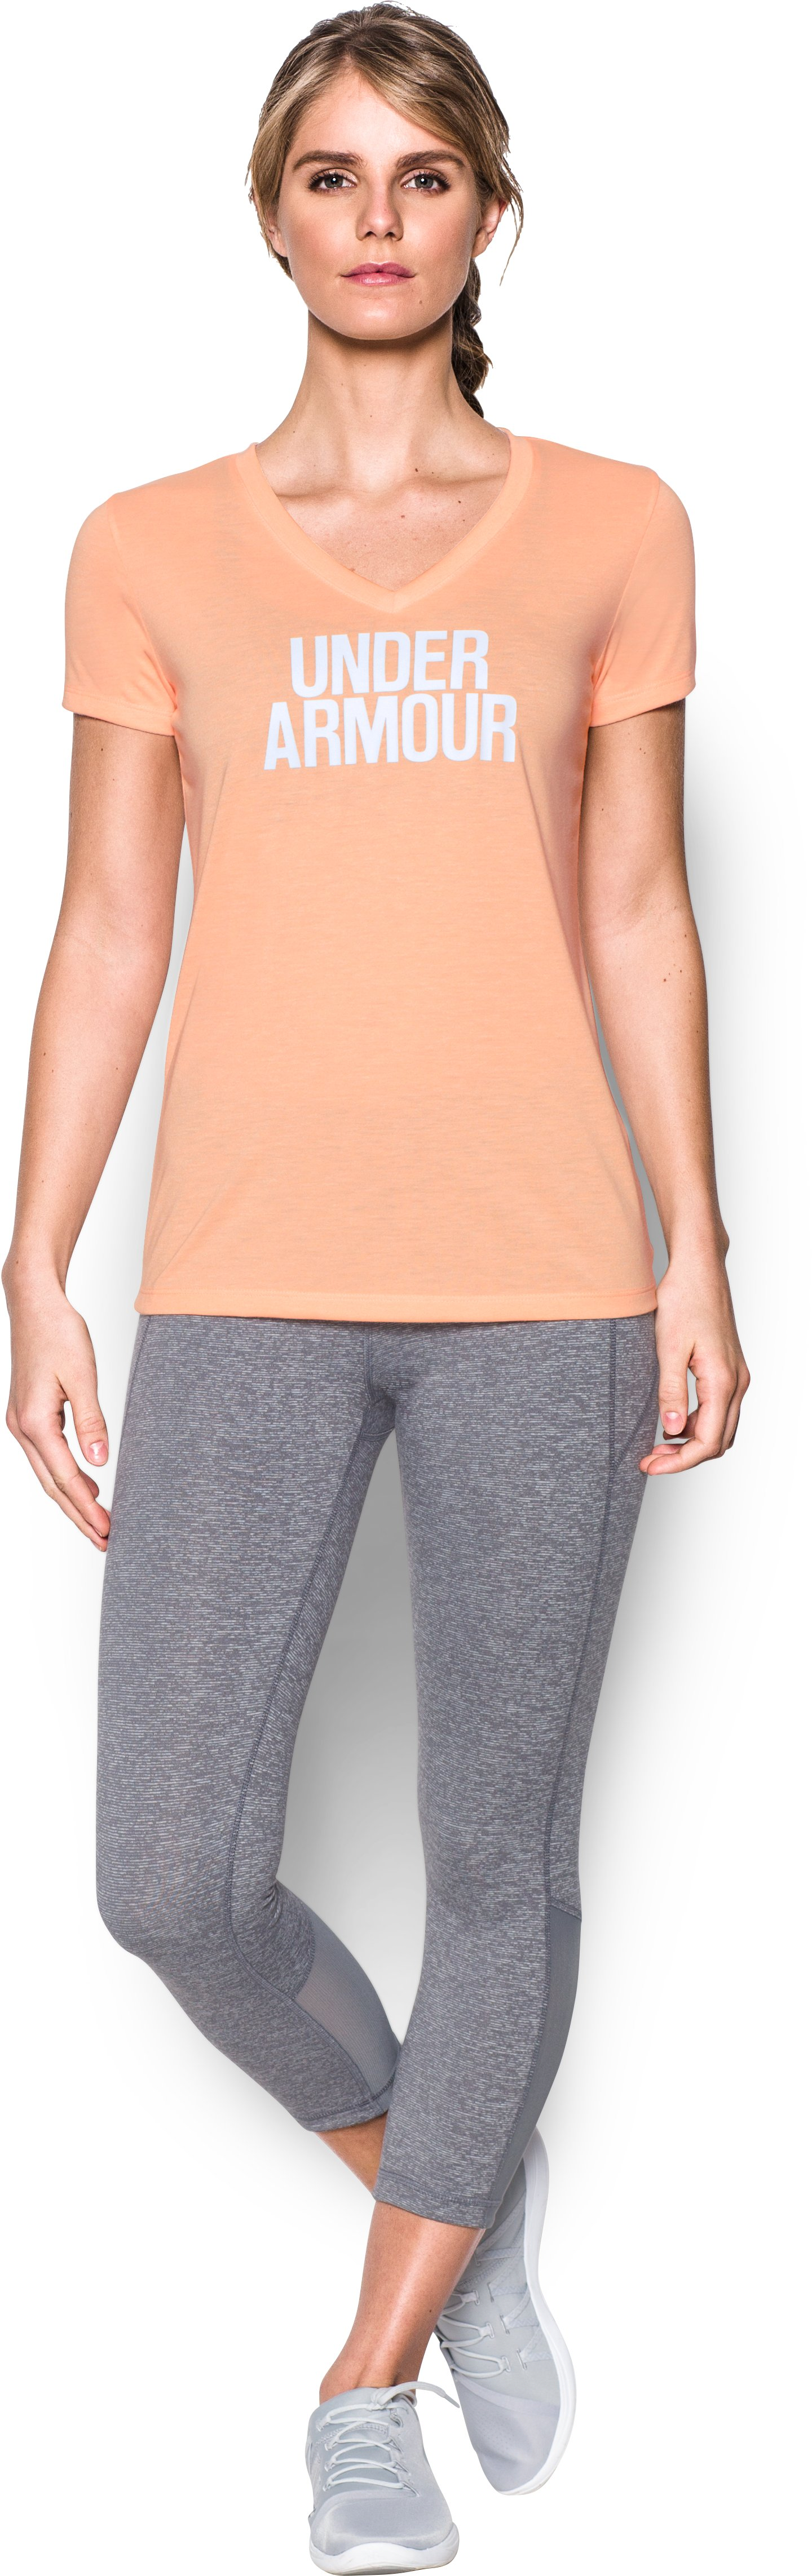 Women's UA Threadborne Train Wordmark V-Neck - Twist, PLAYFUL PEACH, Front